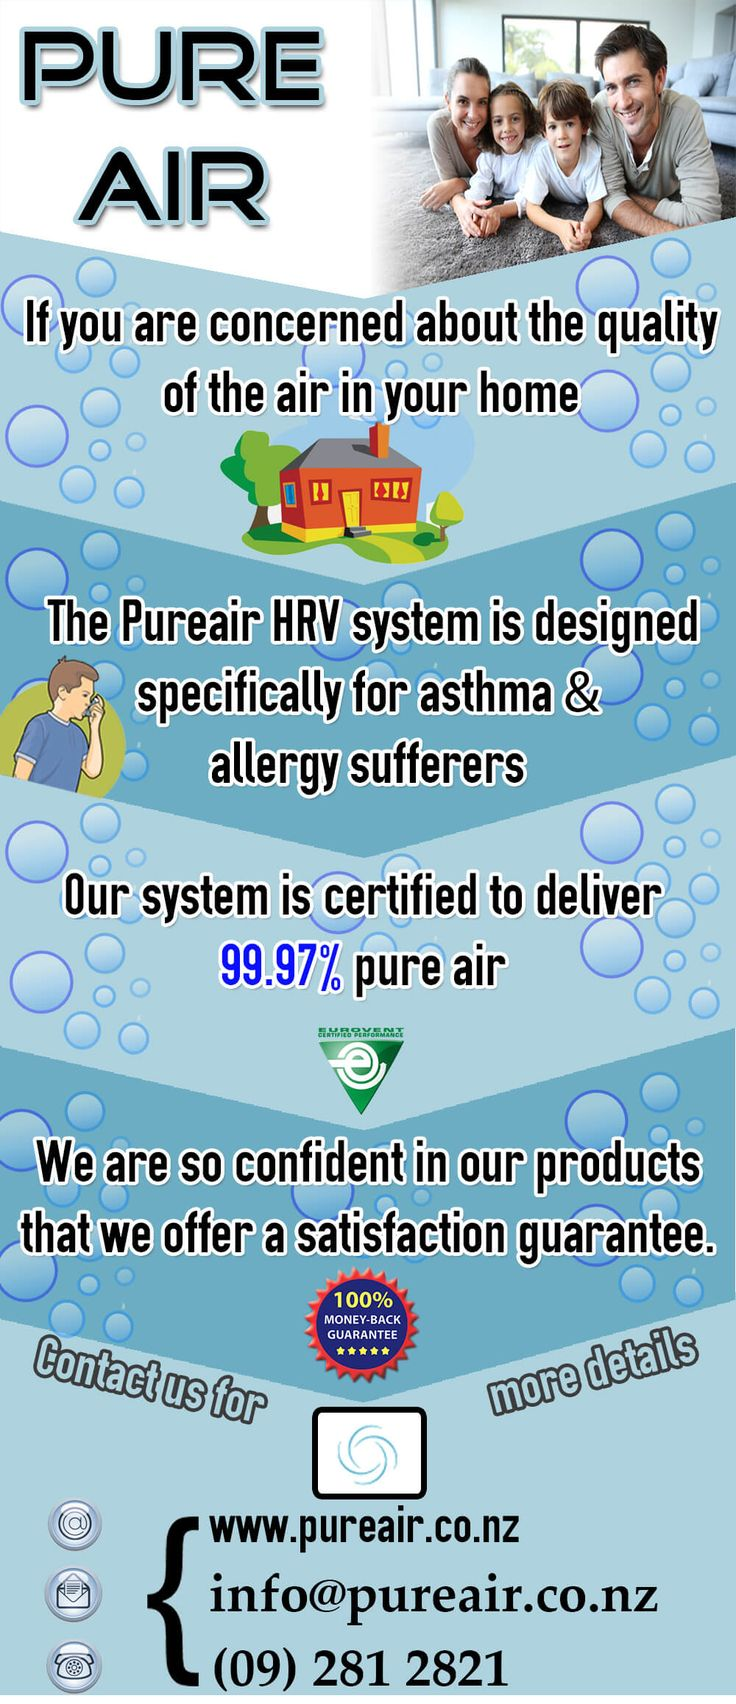 Pure Air   If you are concerned about the quality of the air in your home.